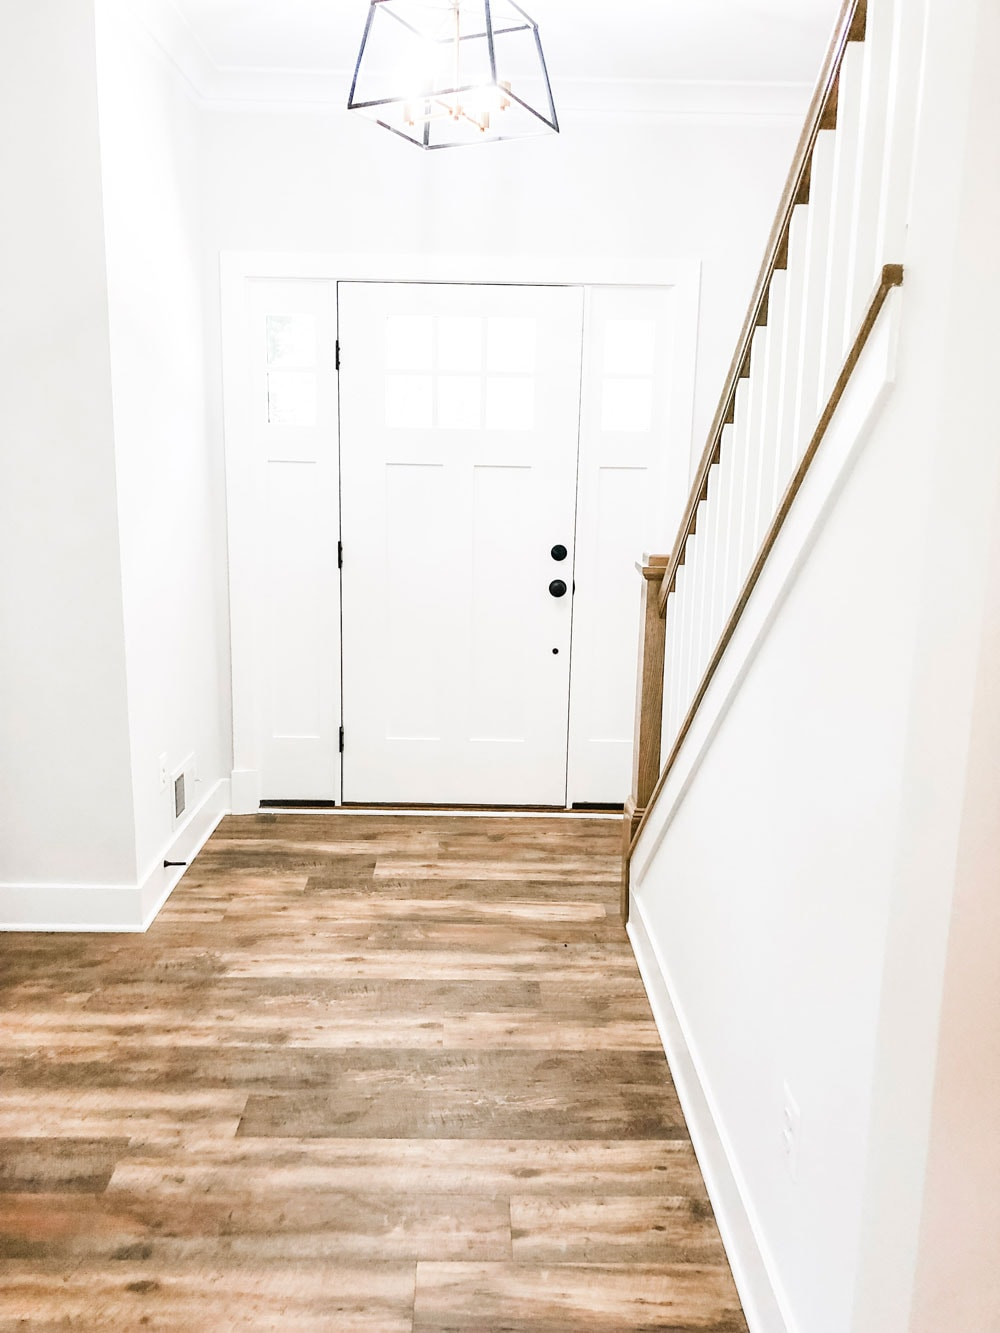 Custom home tour photos. This photo shows the foyer of the home. It has a medium color luxury vinyl wood-looking floor. You can also see the stair rail and the inside of the front door. It is painted white with a black handle.